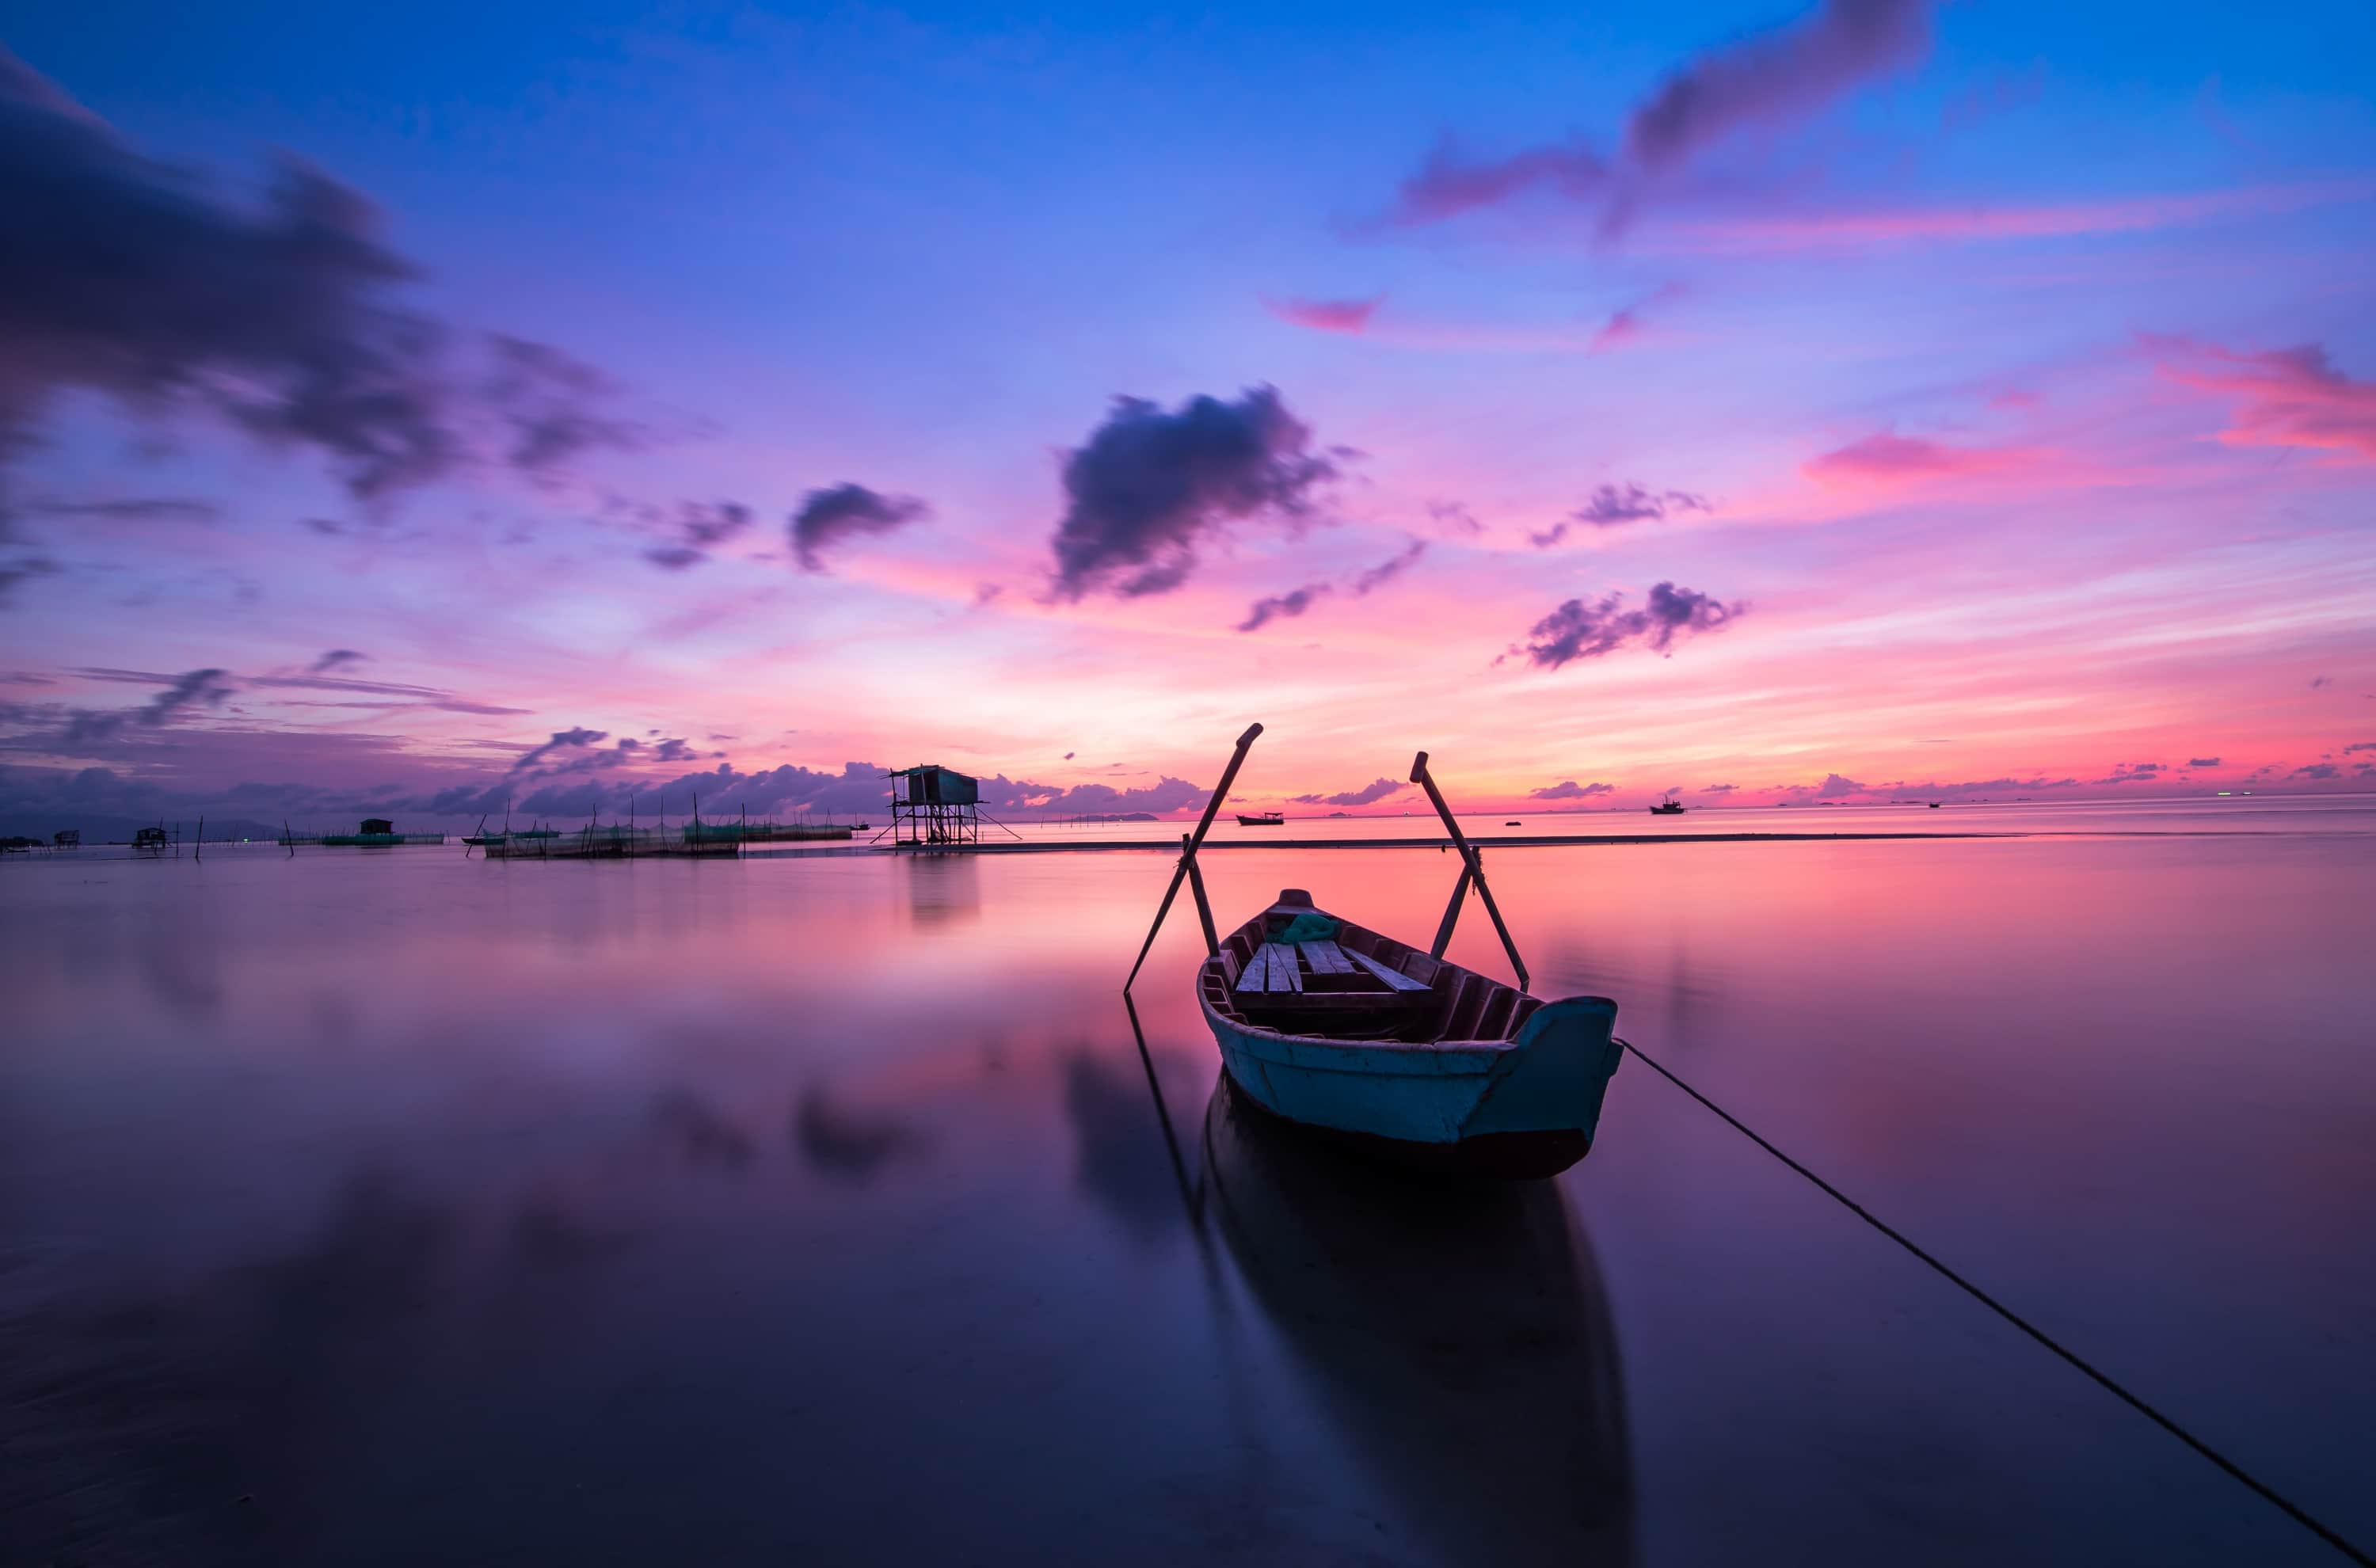 sunrise bloggen